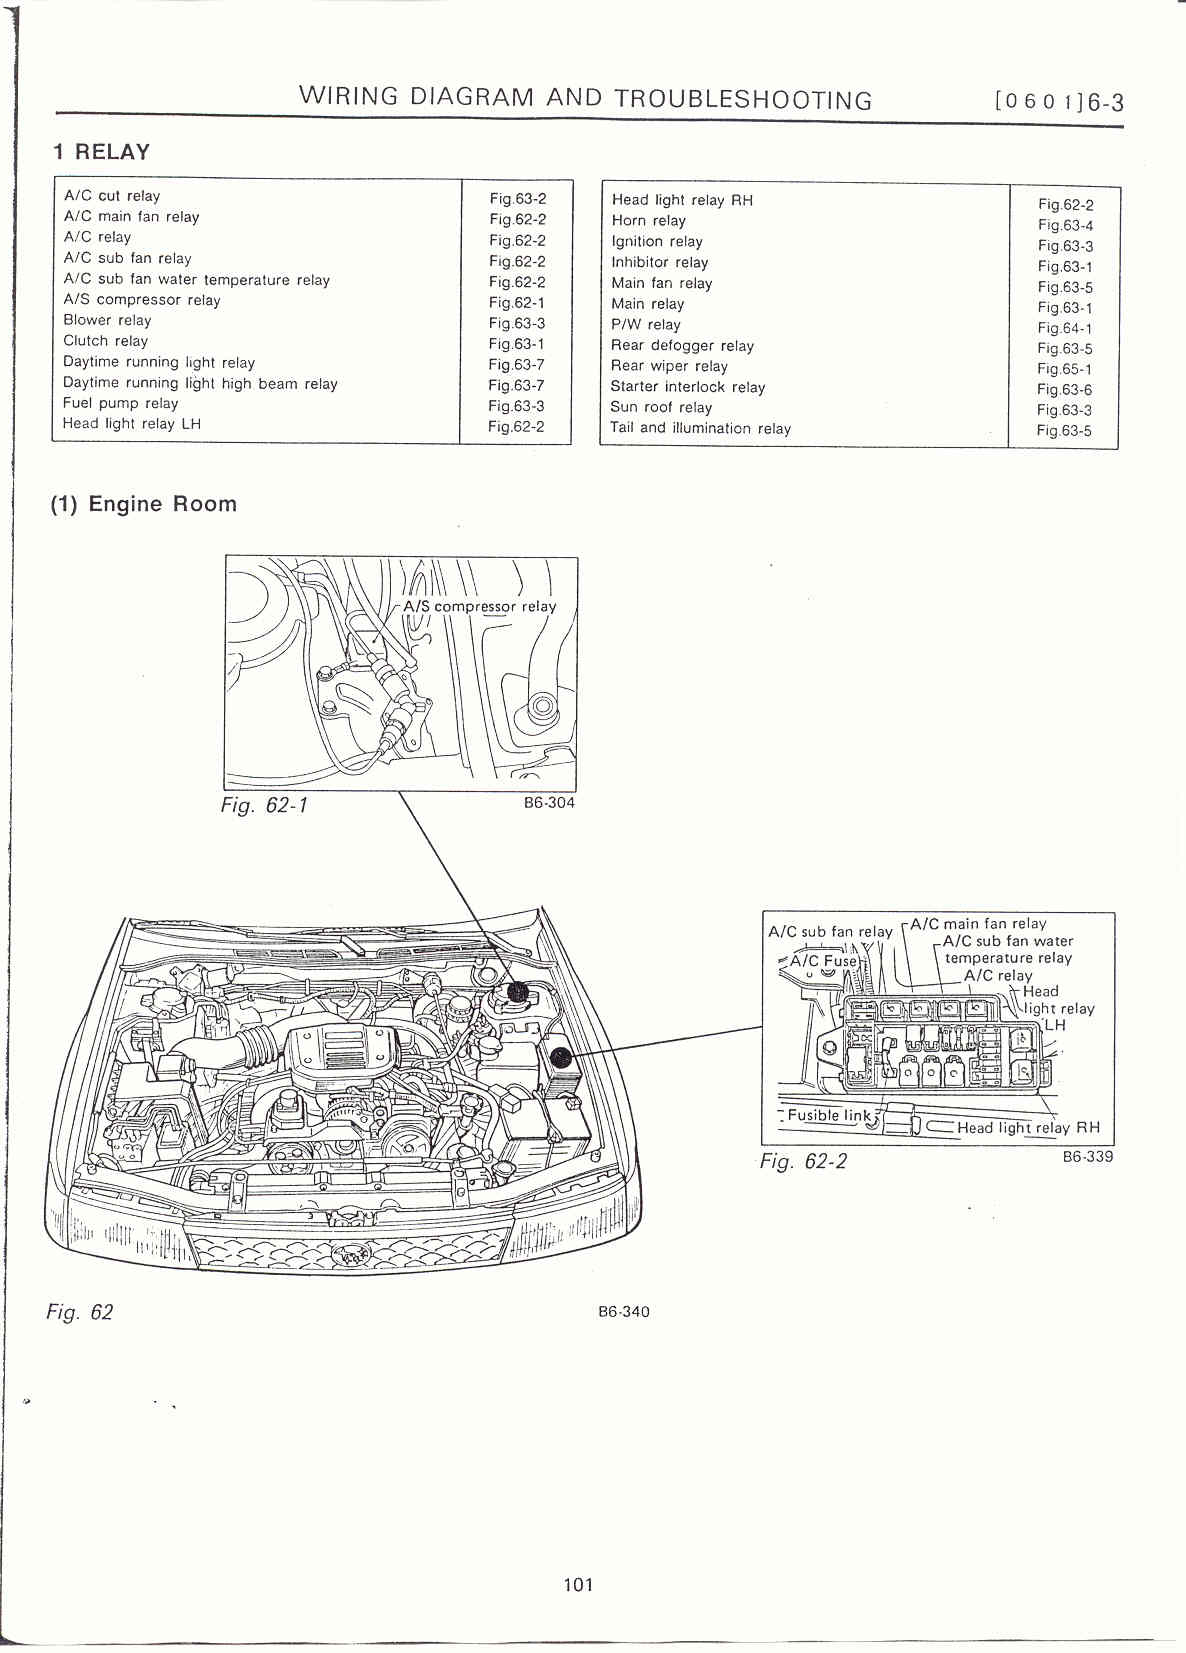 1981 Dodge Ram Wiring Diagram Great Design Of 2006 Radio 2500 1997 Subaru Fuse Box U2022 For Free 2012